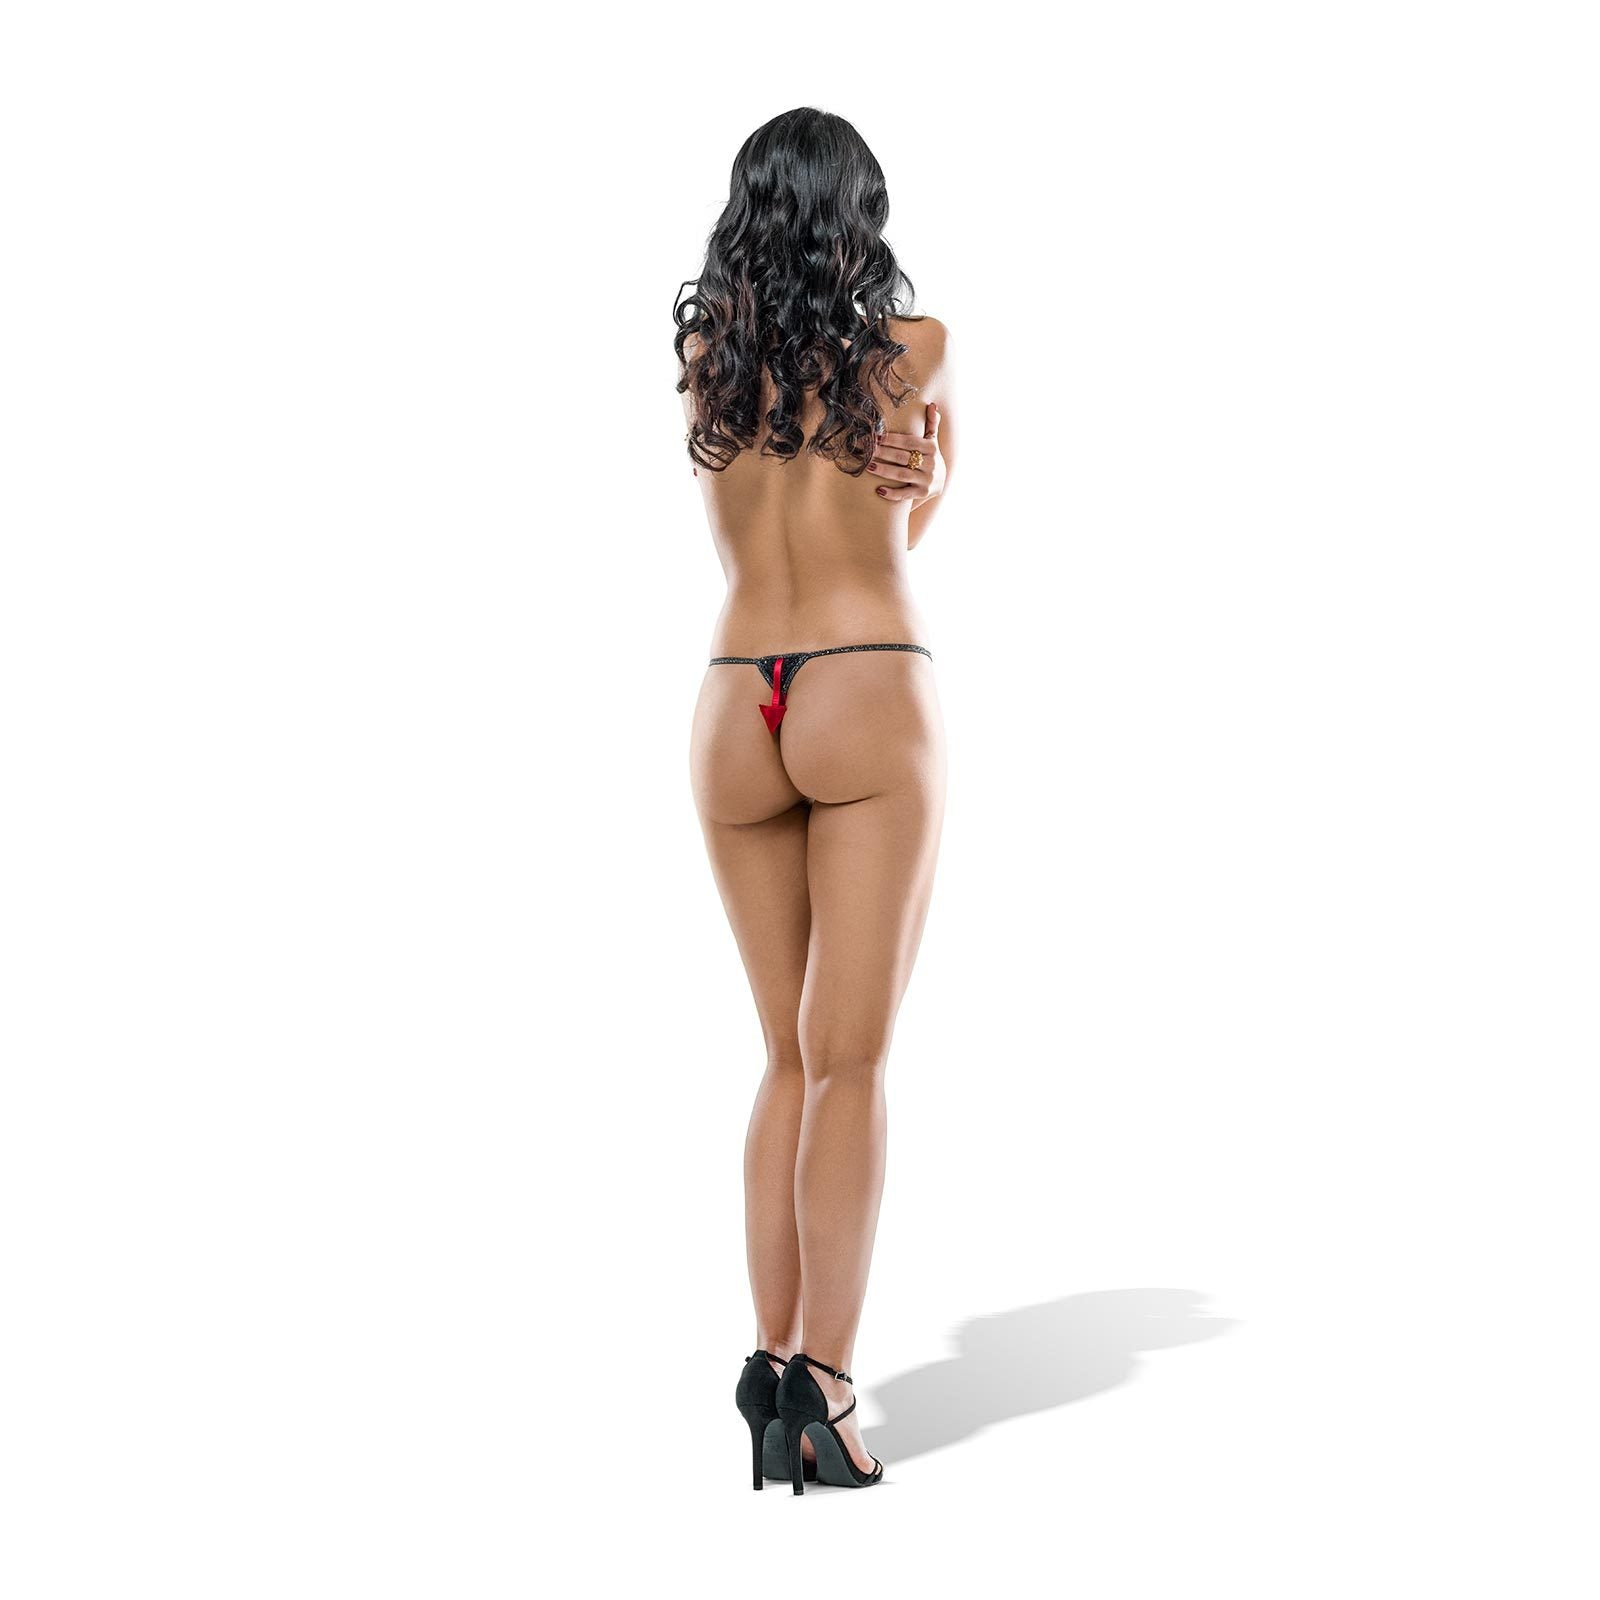 RED DEVIL G-string thong Size 5